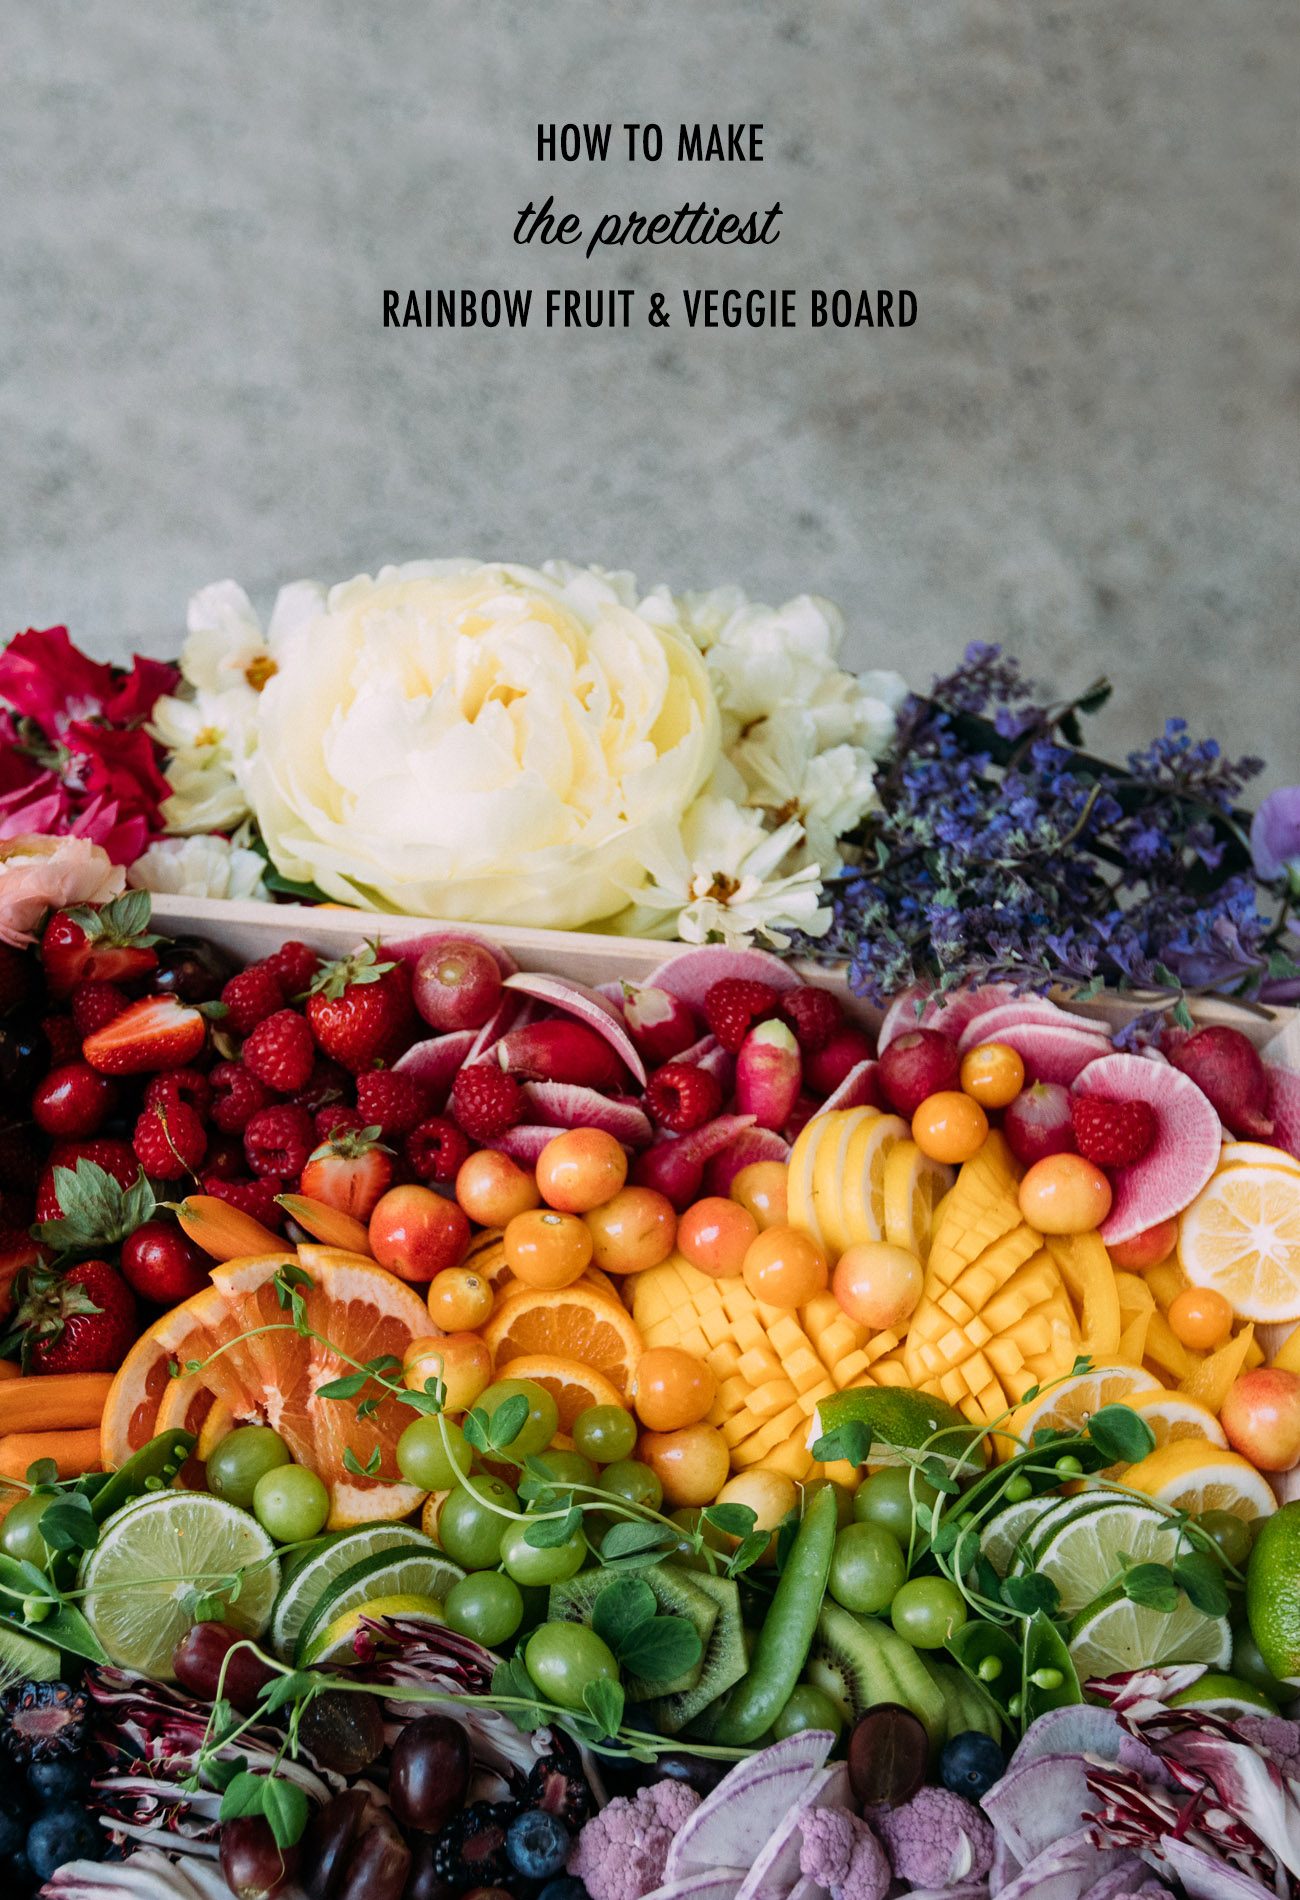 How to Make the Prettiest Rainbow Fruit and Veggie Platter